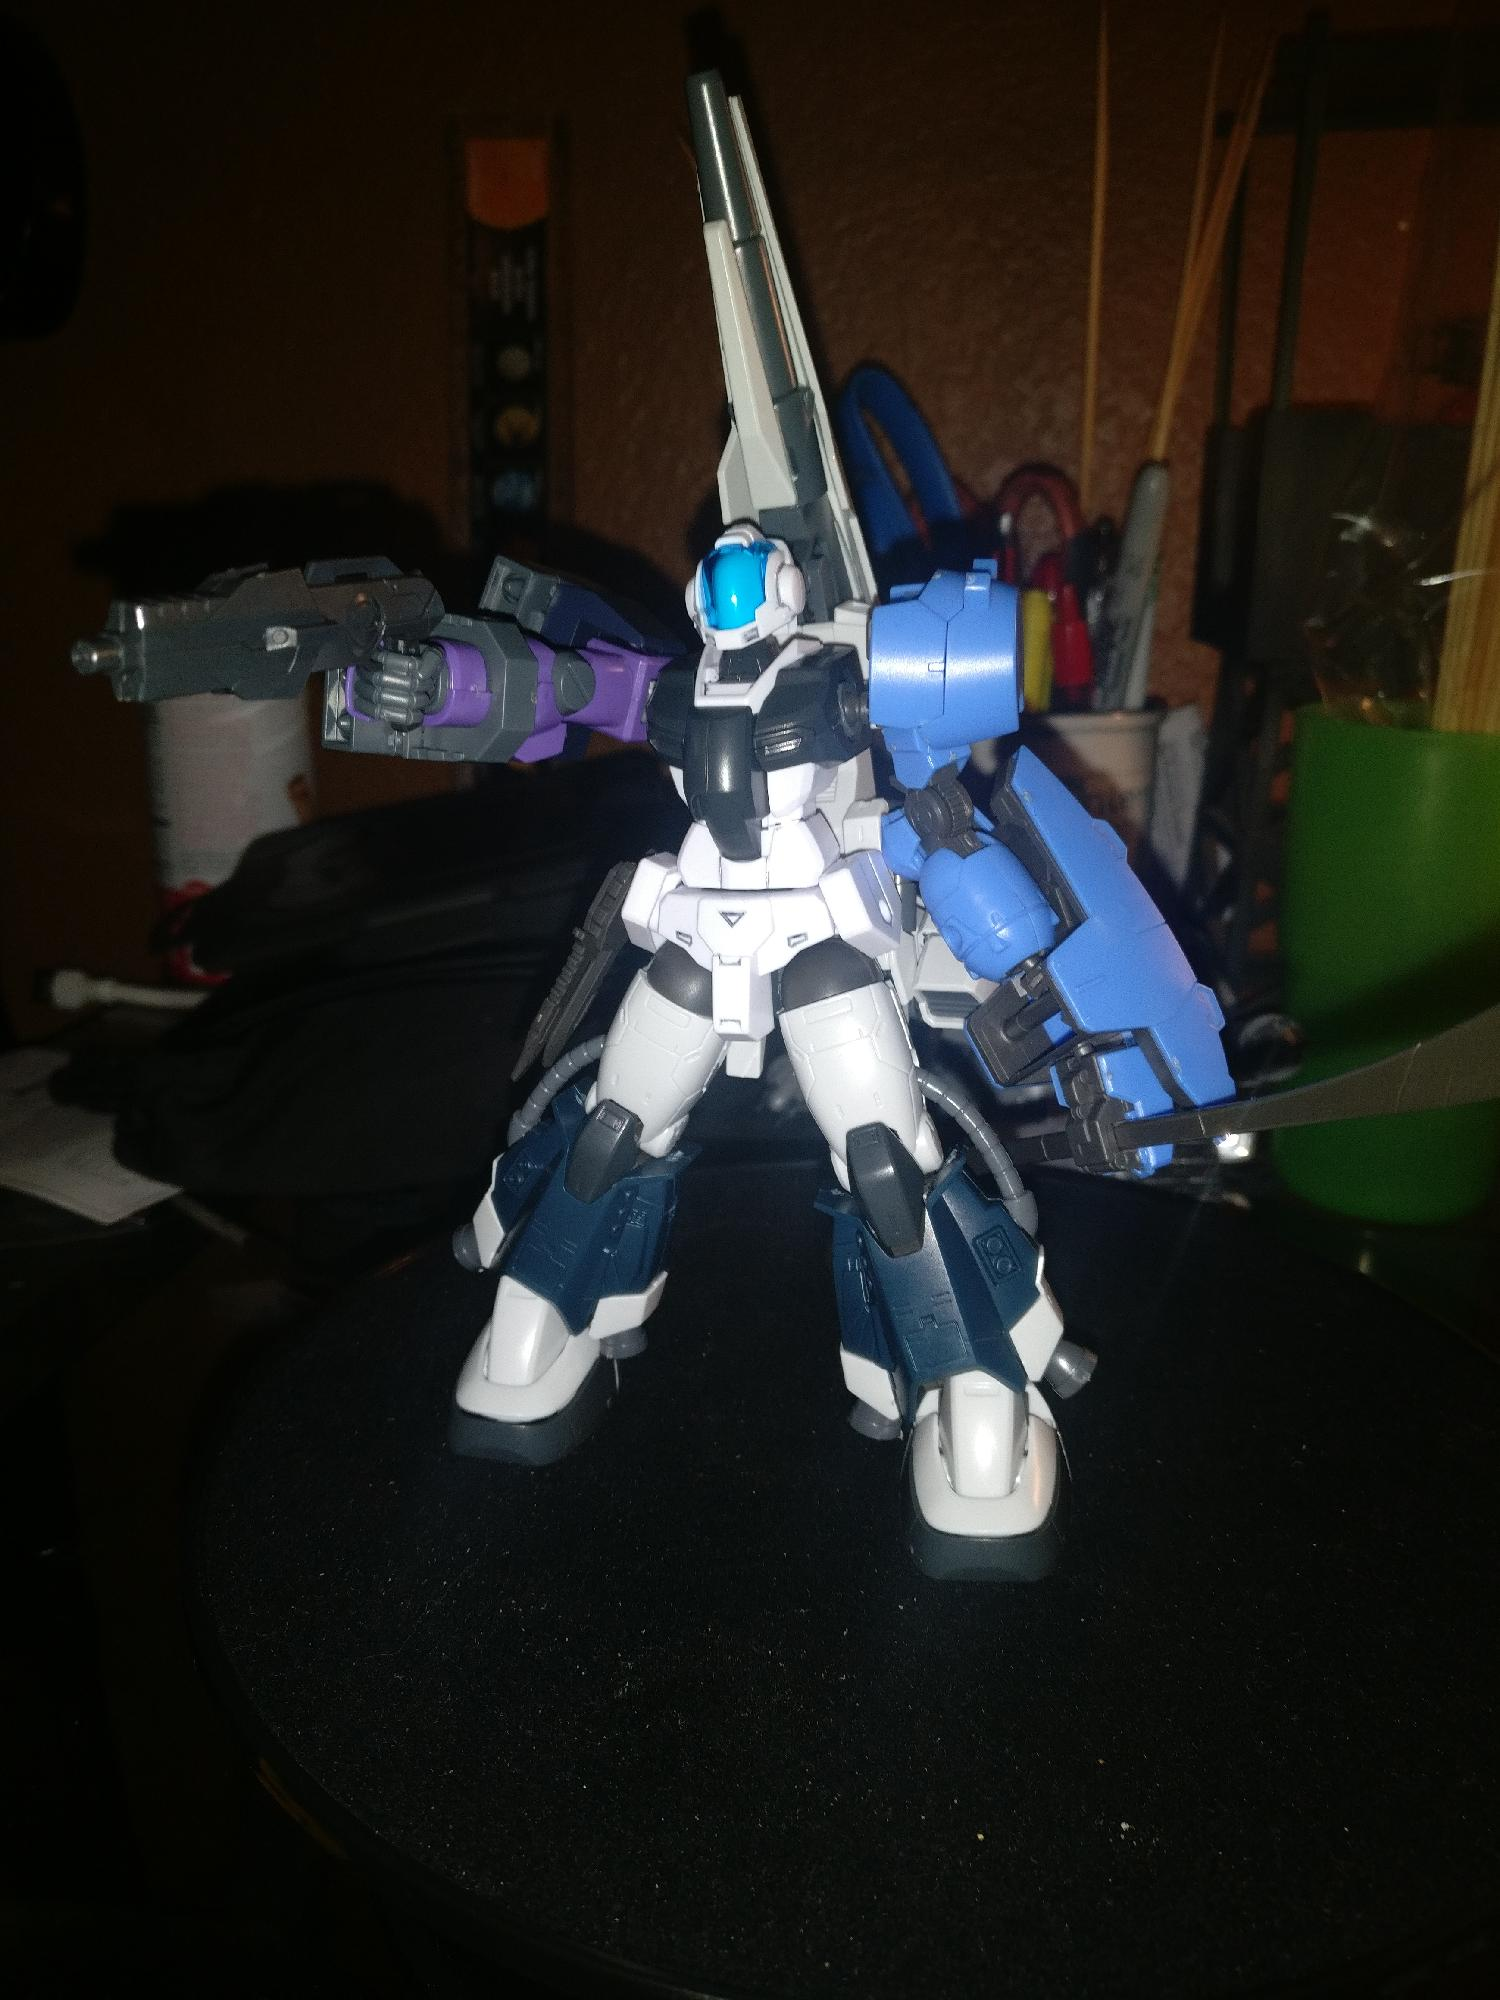 Opinions on my first custom gunpla